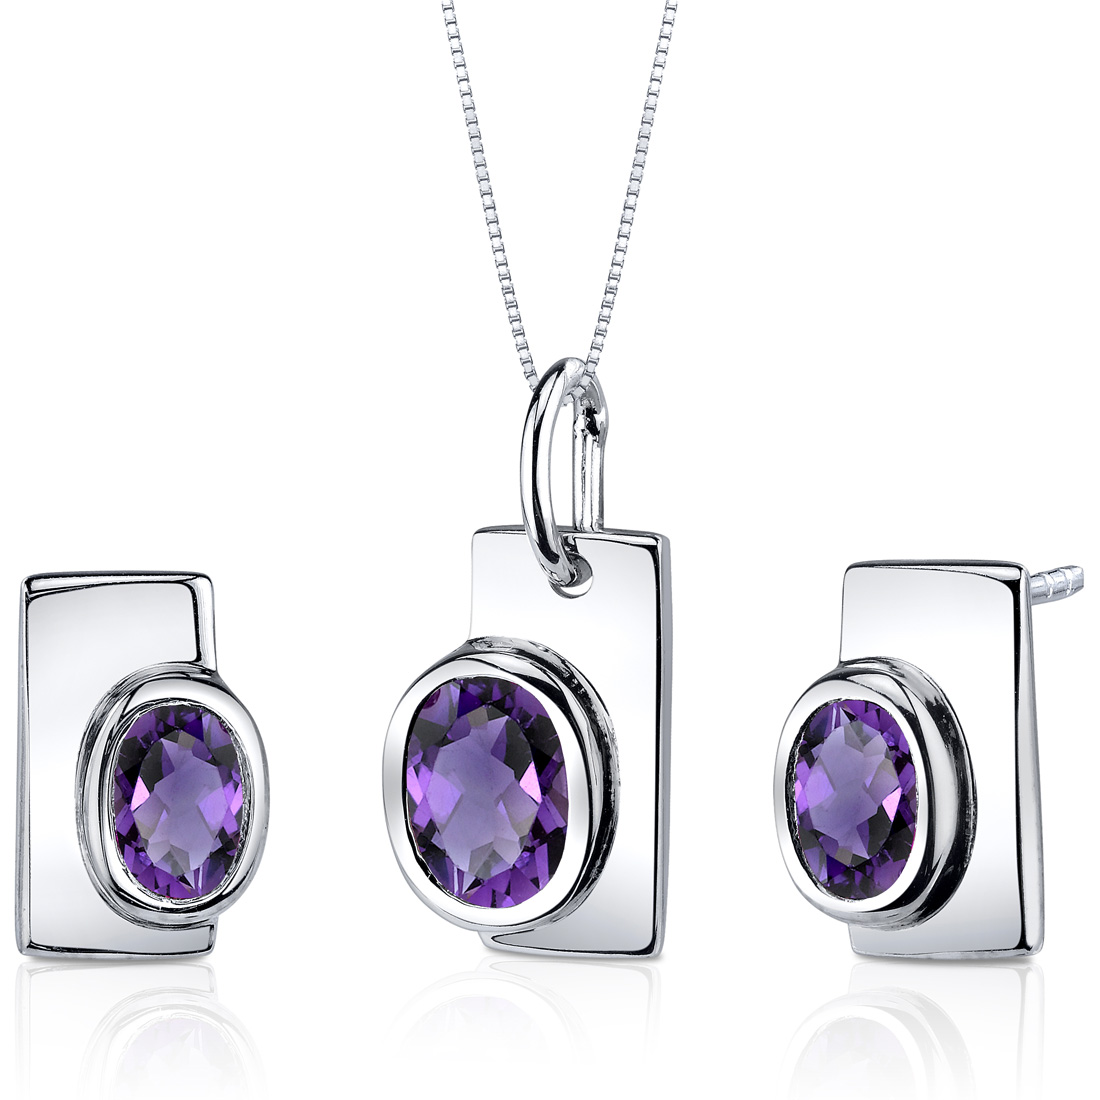 peora Art Deco Bezel Set 1.75 carats Sterling Silver with Rhodium Finish Amethyst Pendant Earrings Set